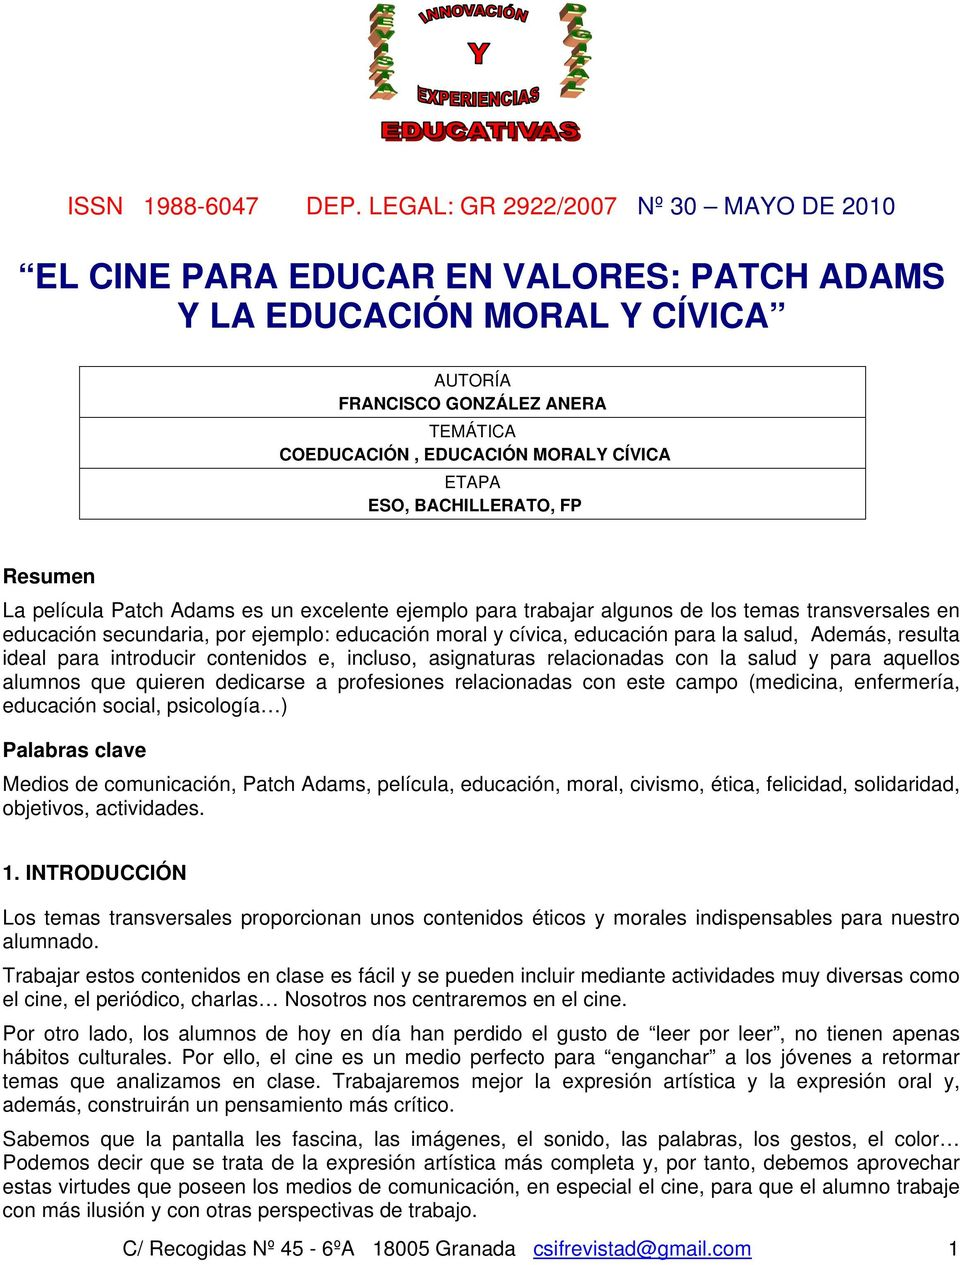 EL CINE PARA EDUCAR EN VALORES: PATCH ADAMS Y LA EDUCACIÓN MORAL Y ...